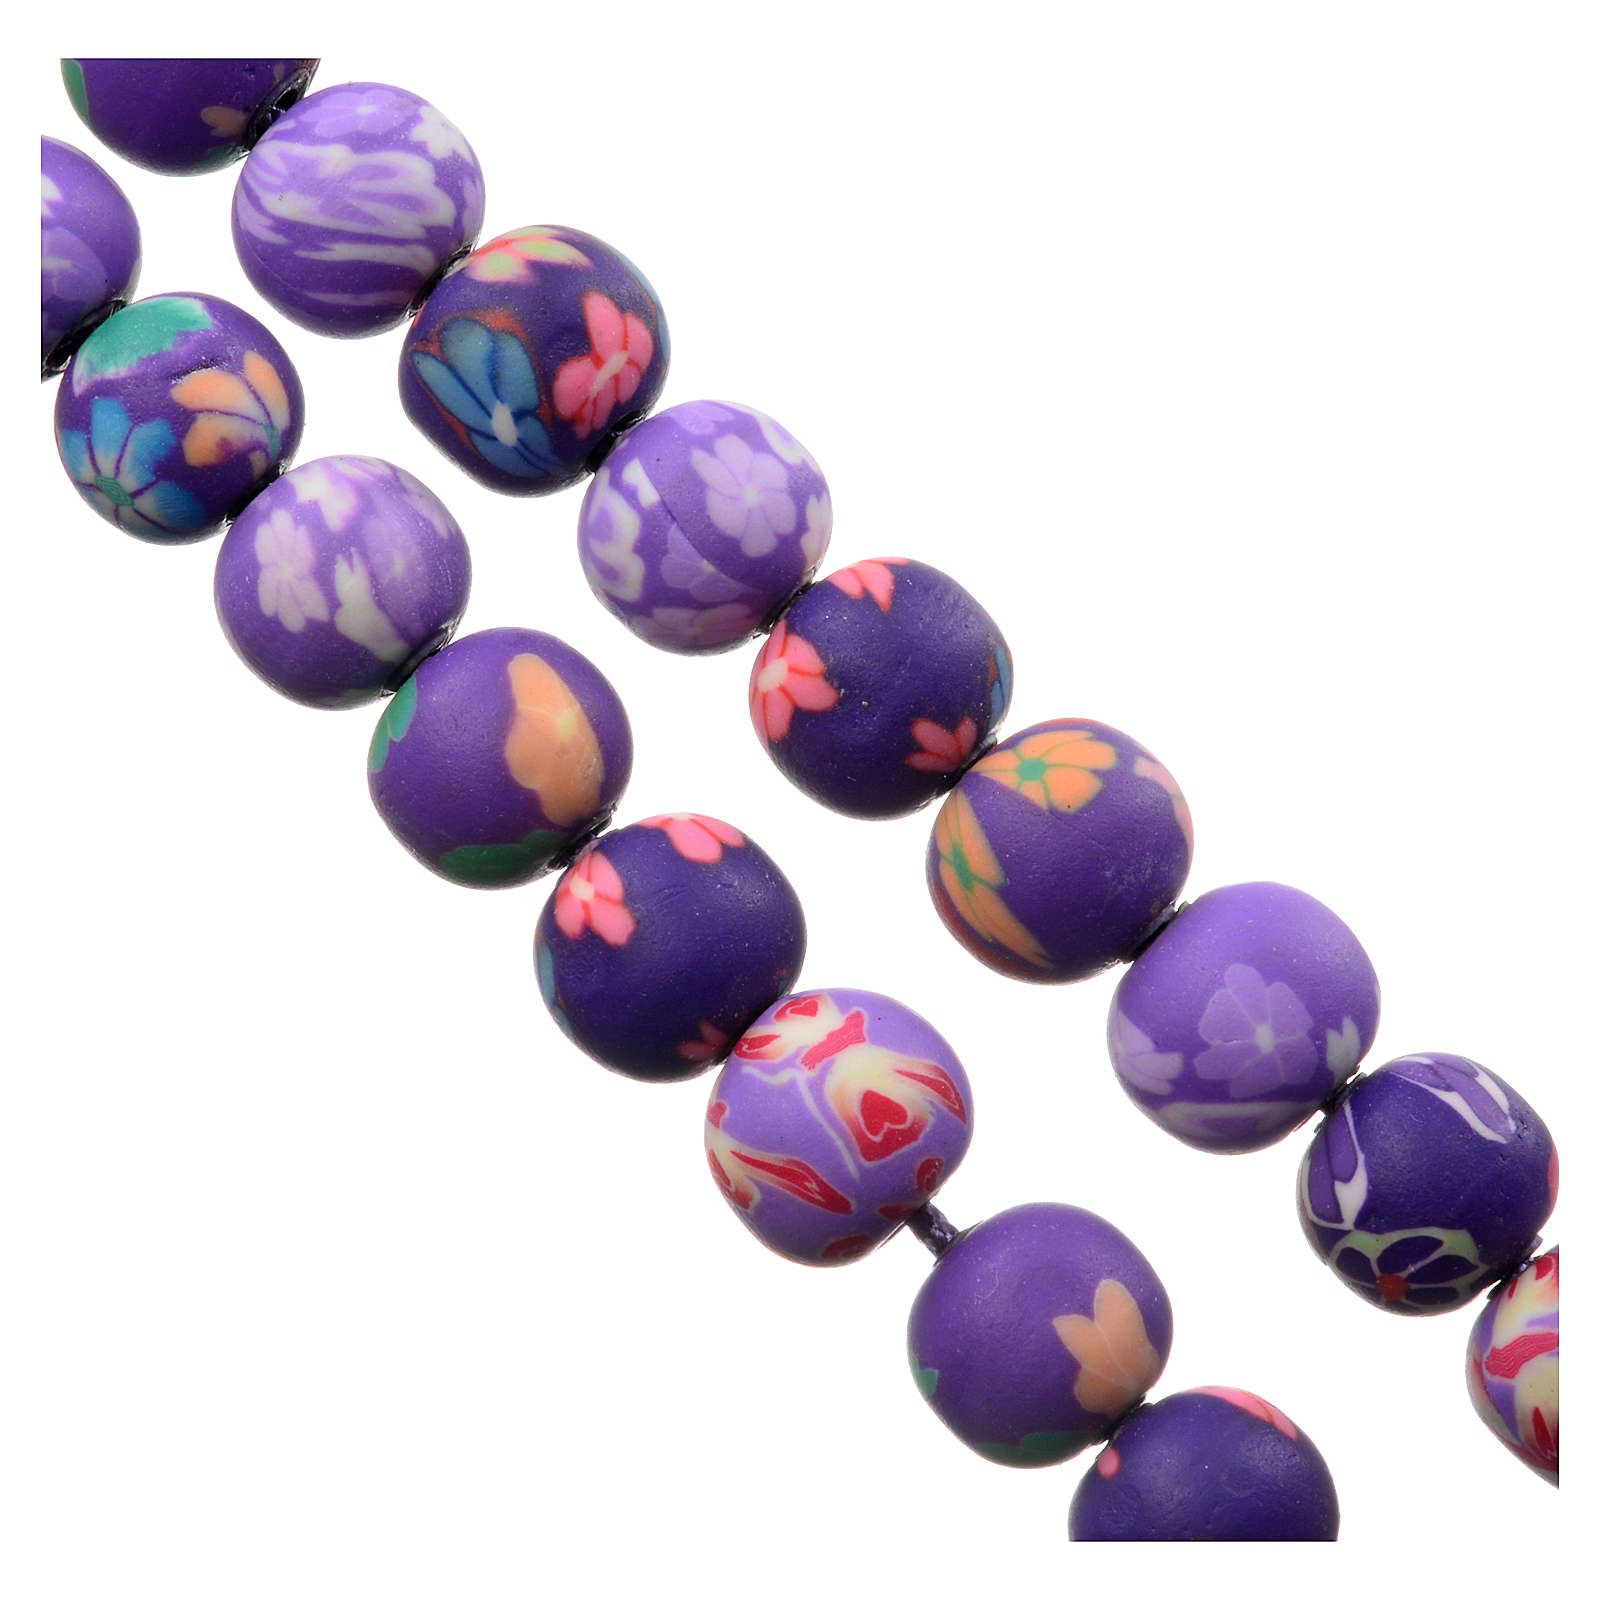 Medjugorje rosary in purple floral fimo with Medjugorje soil 4